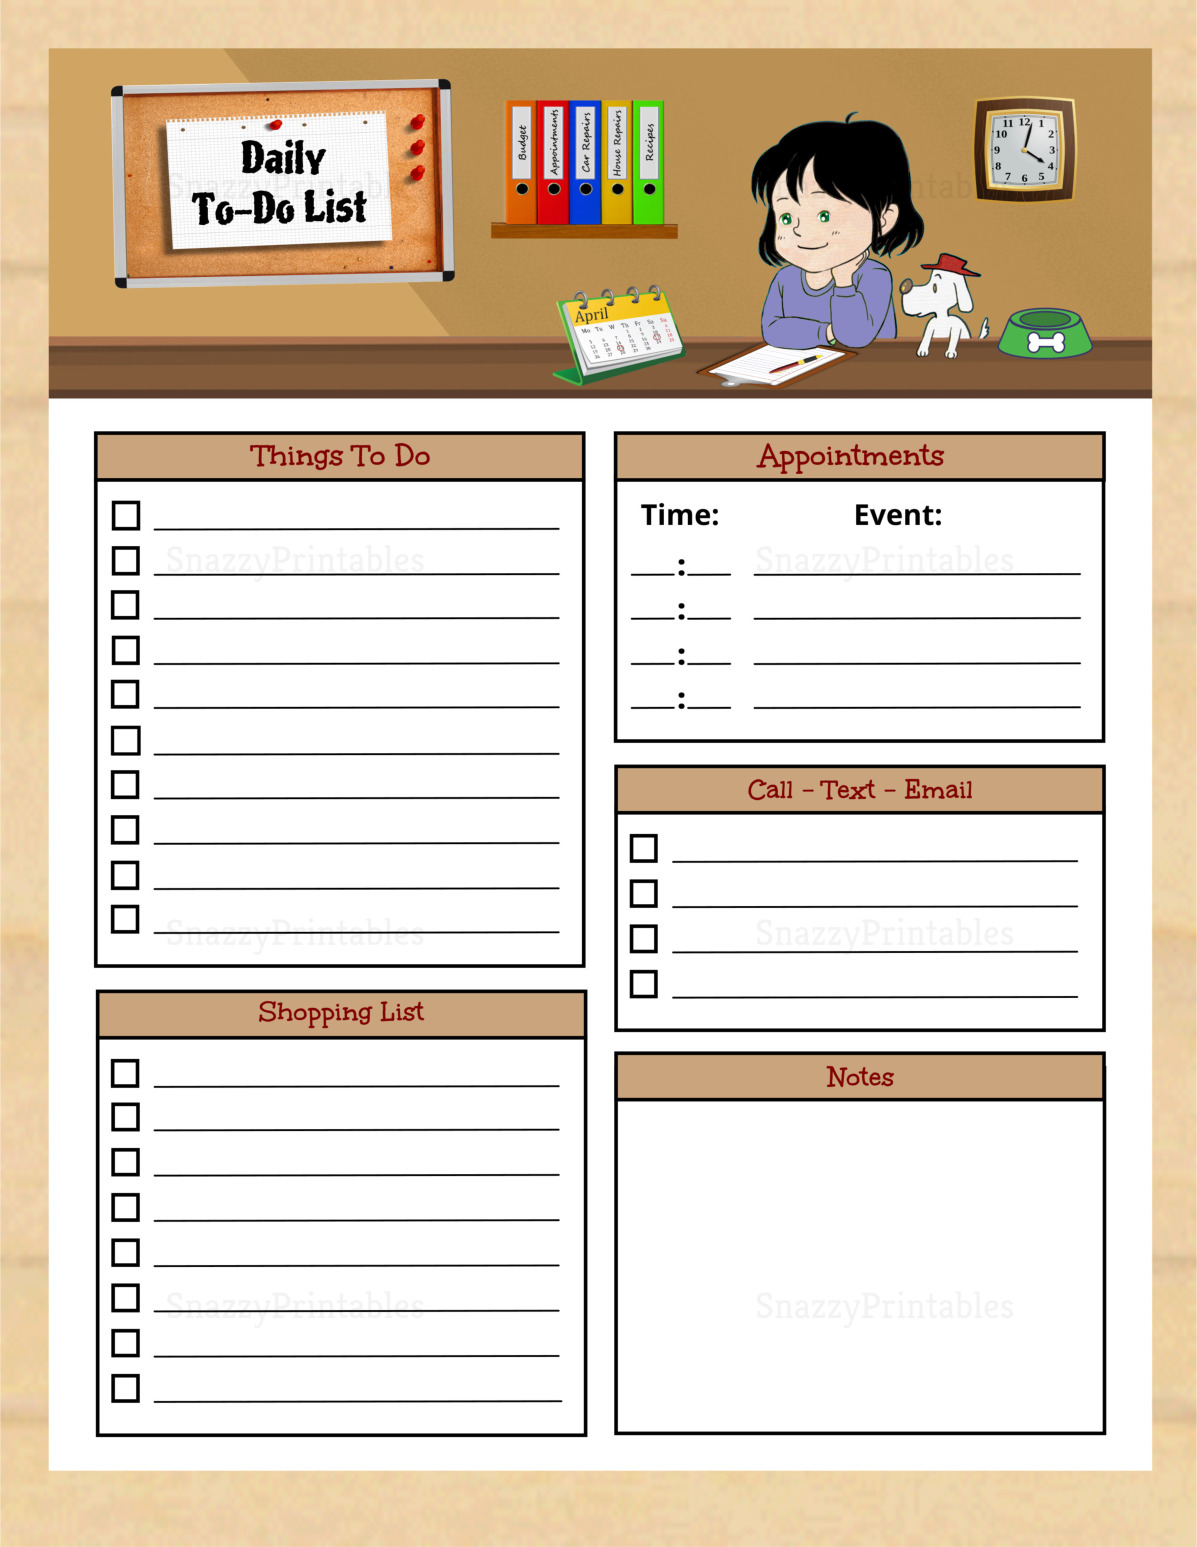 Daily To-Do List Printable - Instant Download PDF